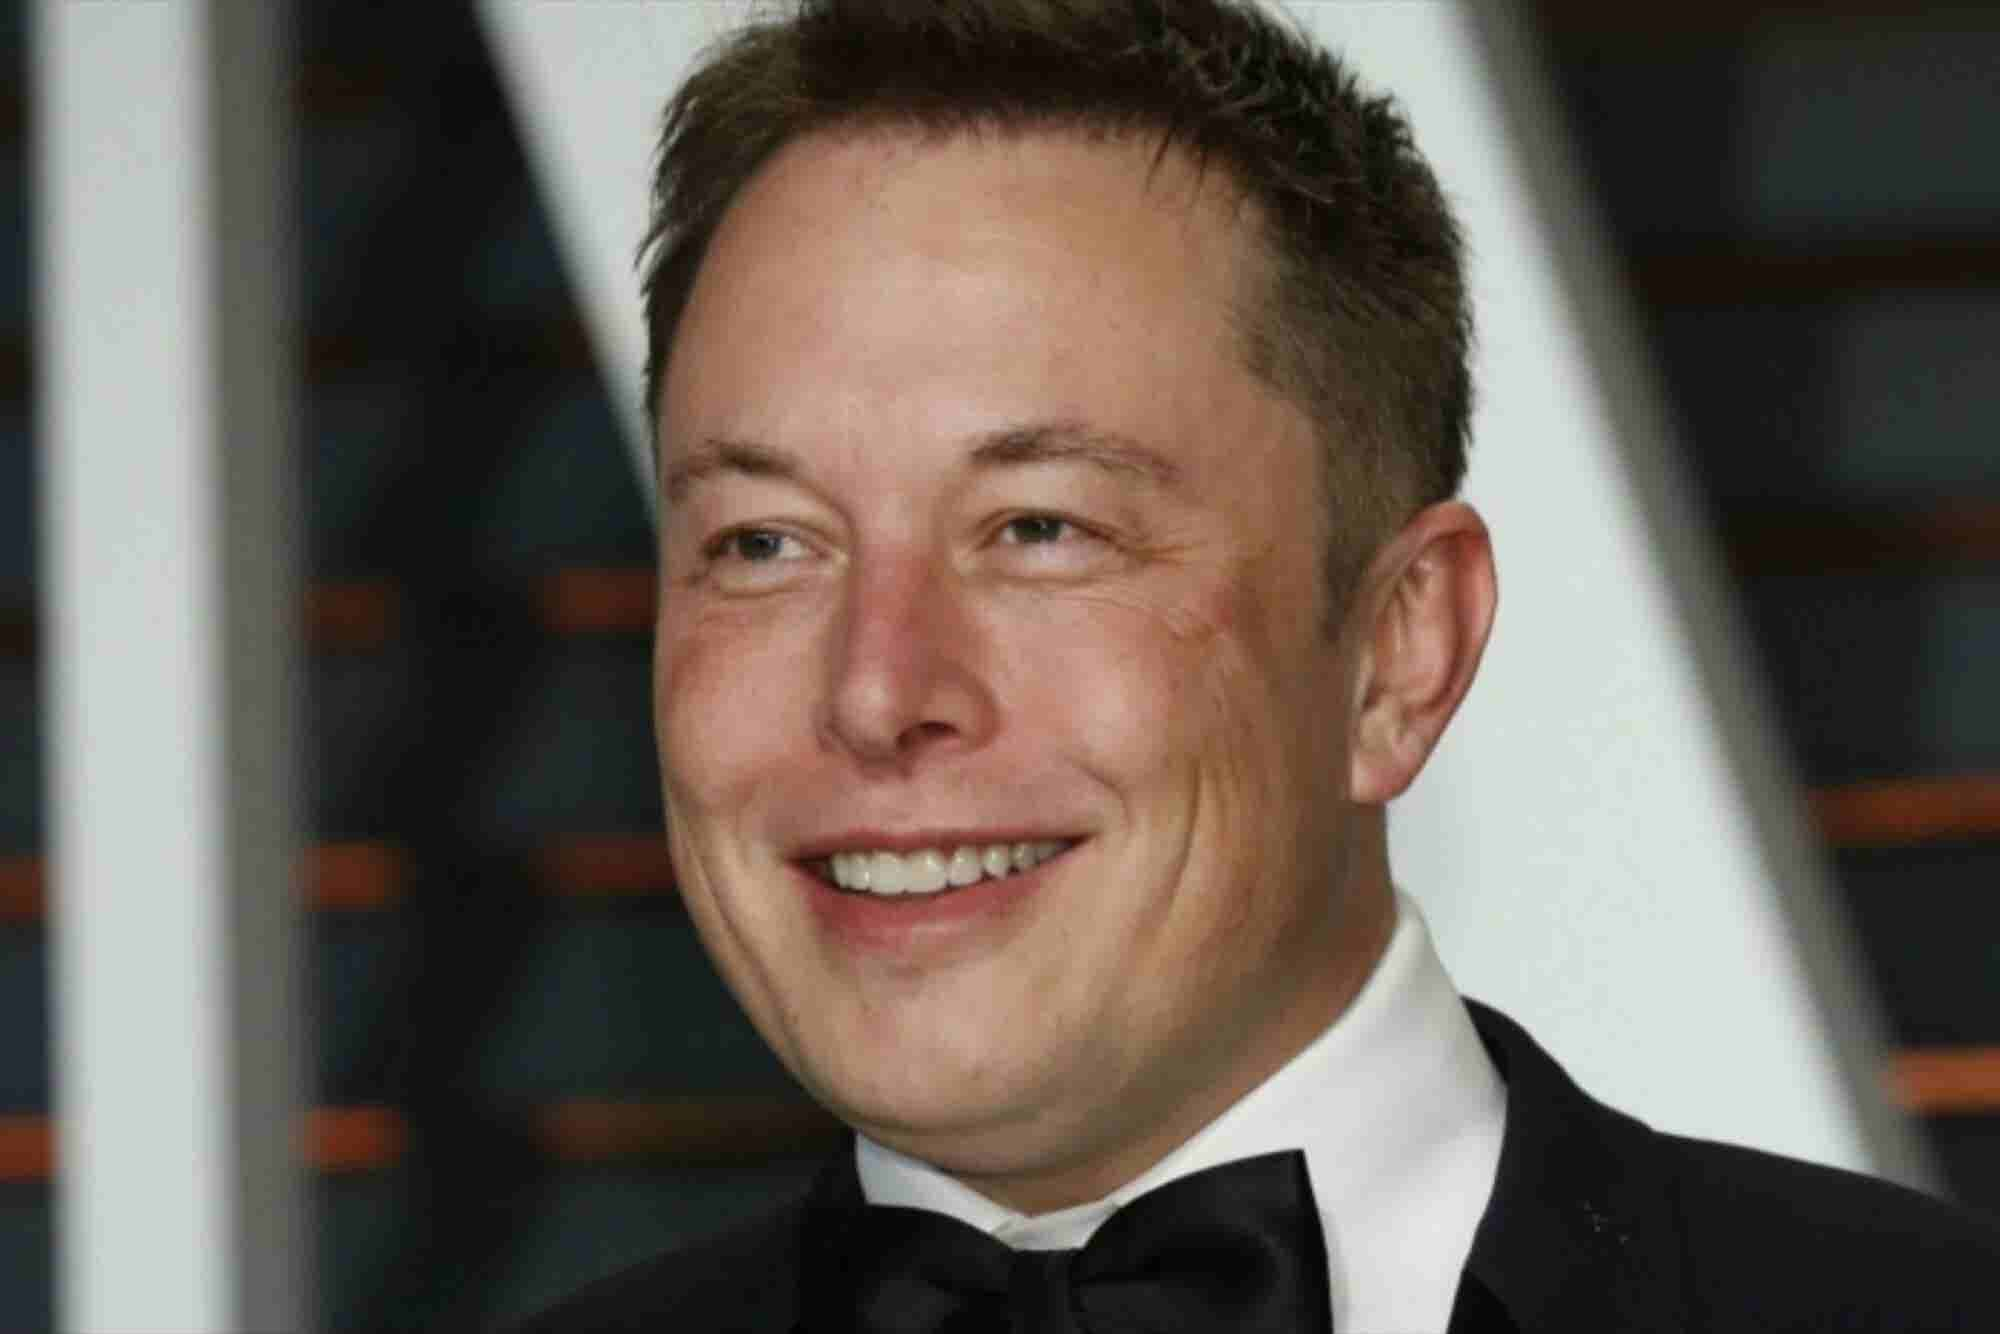 If Elon Musk Can Have a Sense of Humor About Failure, So Can You